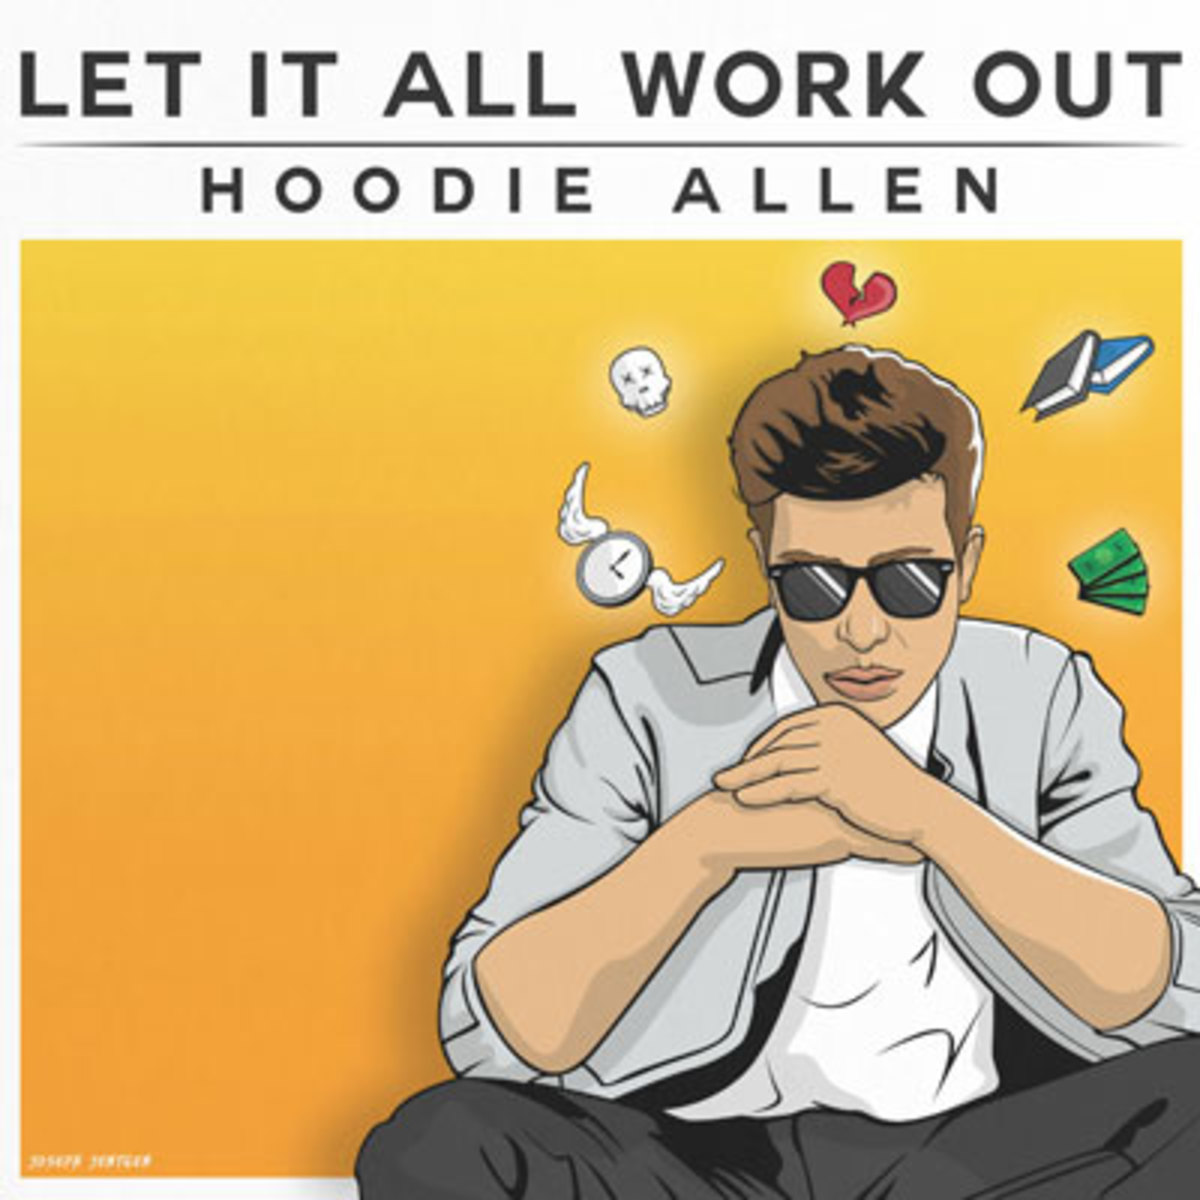 hoodie-allen-let-it-all-work-out.jpg